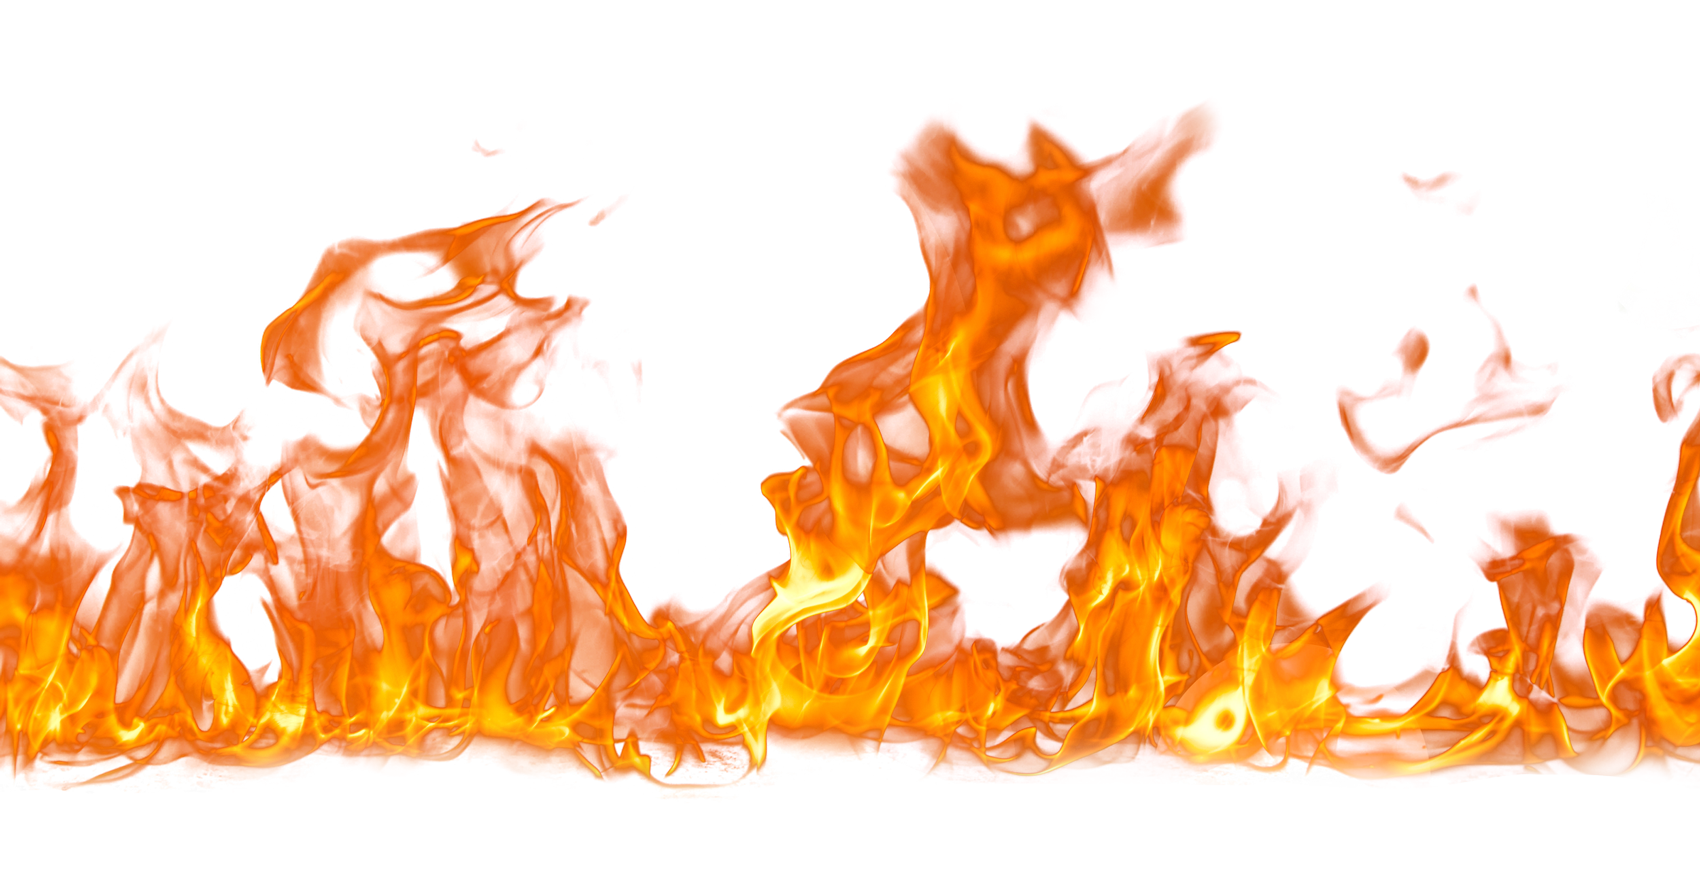 Fire transparent images all. Fuego png image library library